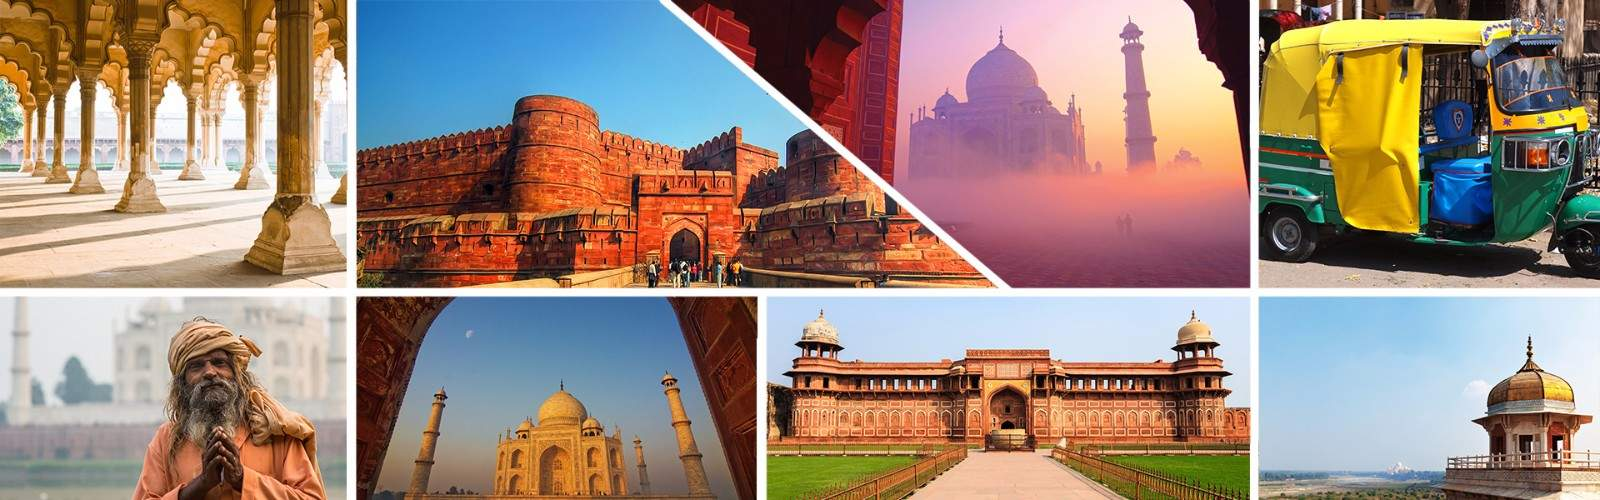 Wendy Wu Tours Agra Holidays